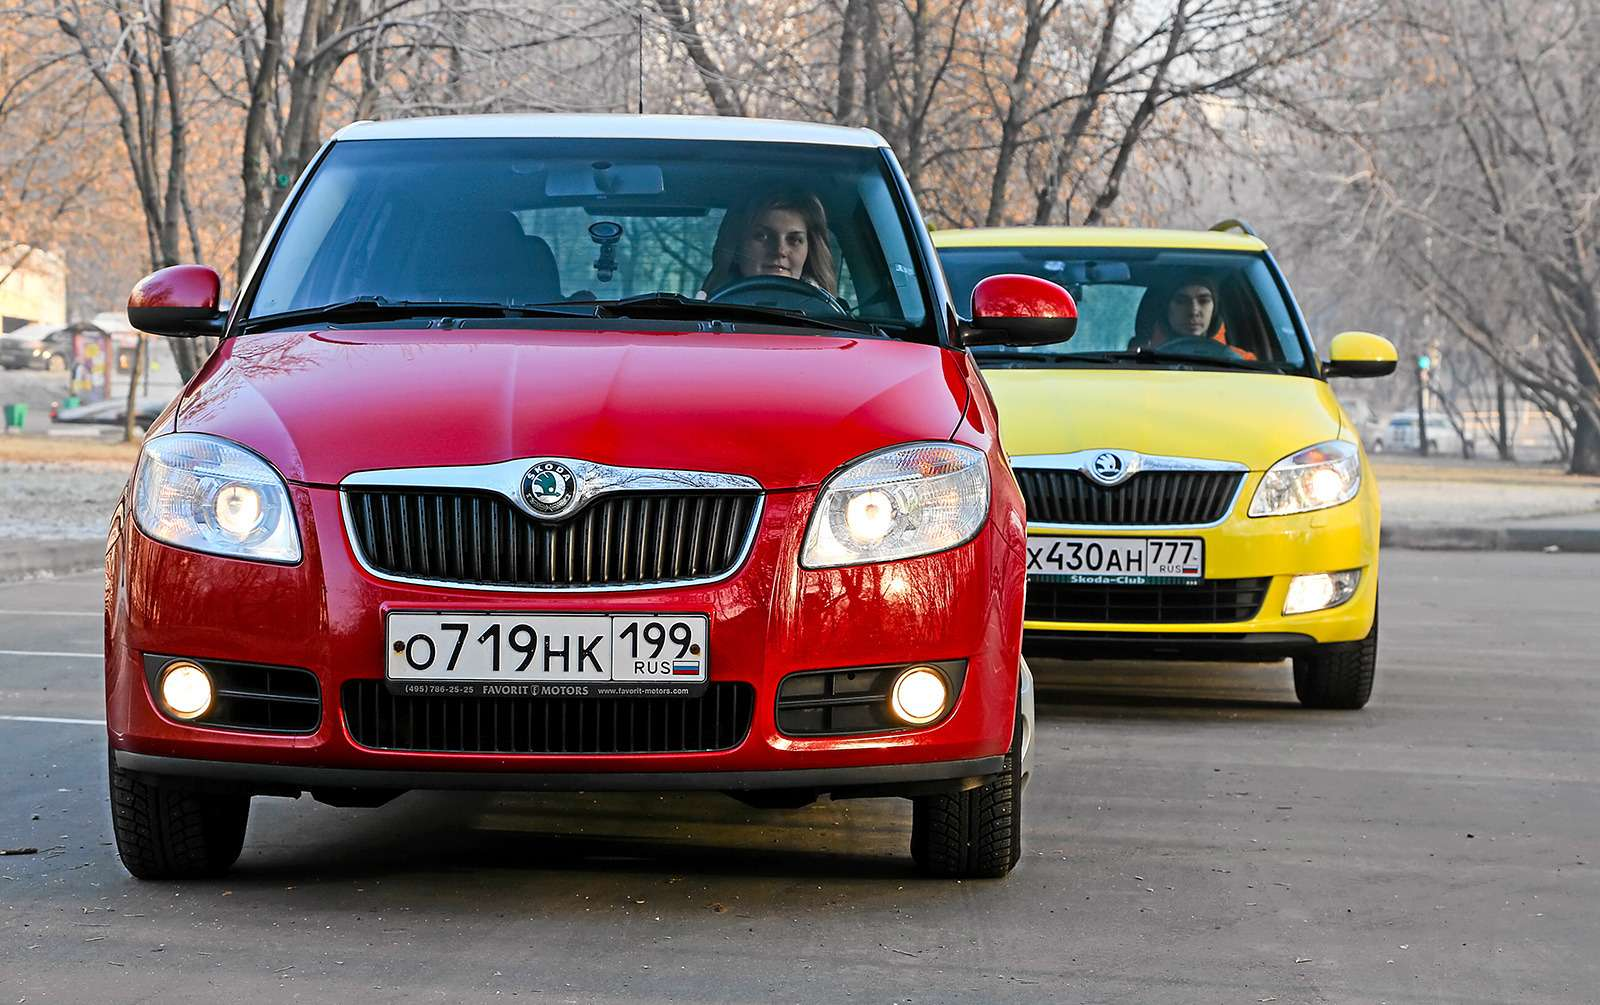 00Fabia-selected_zr 01_15